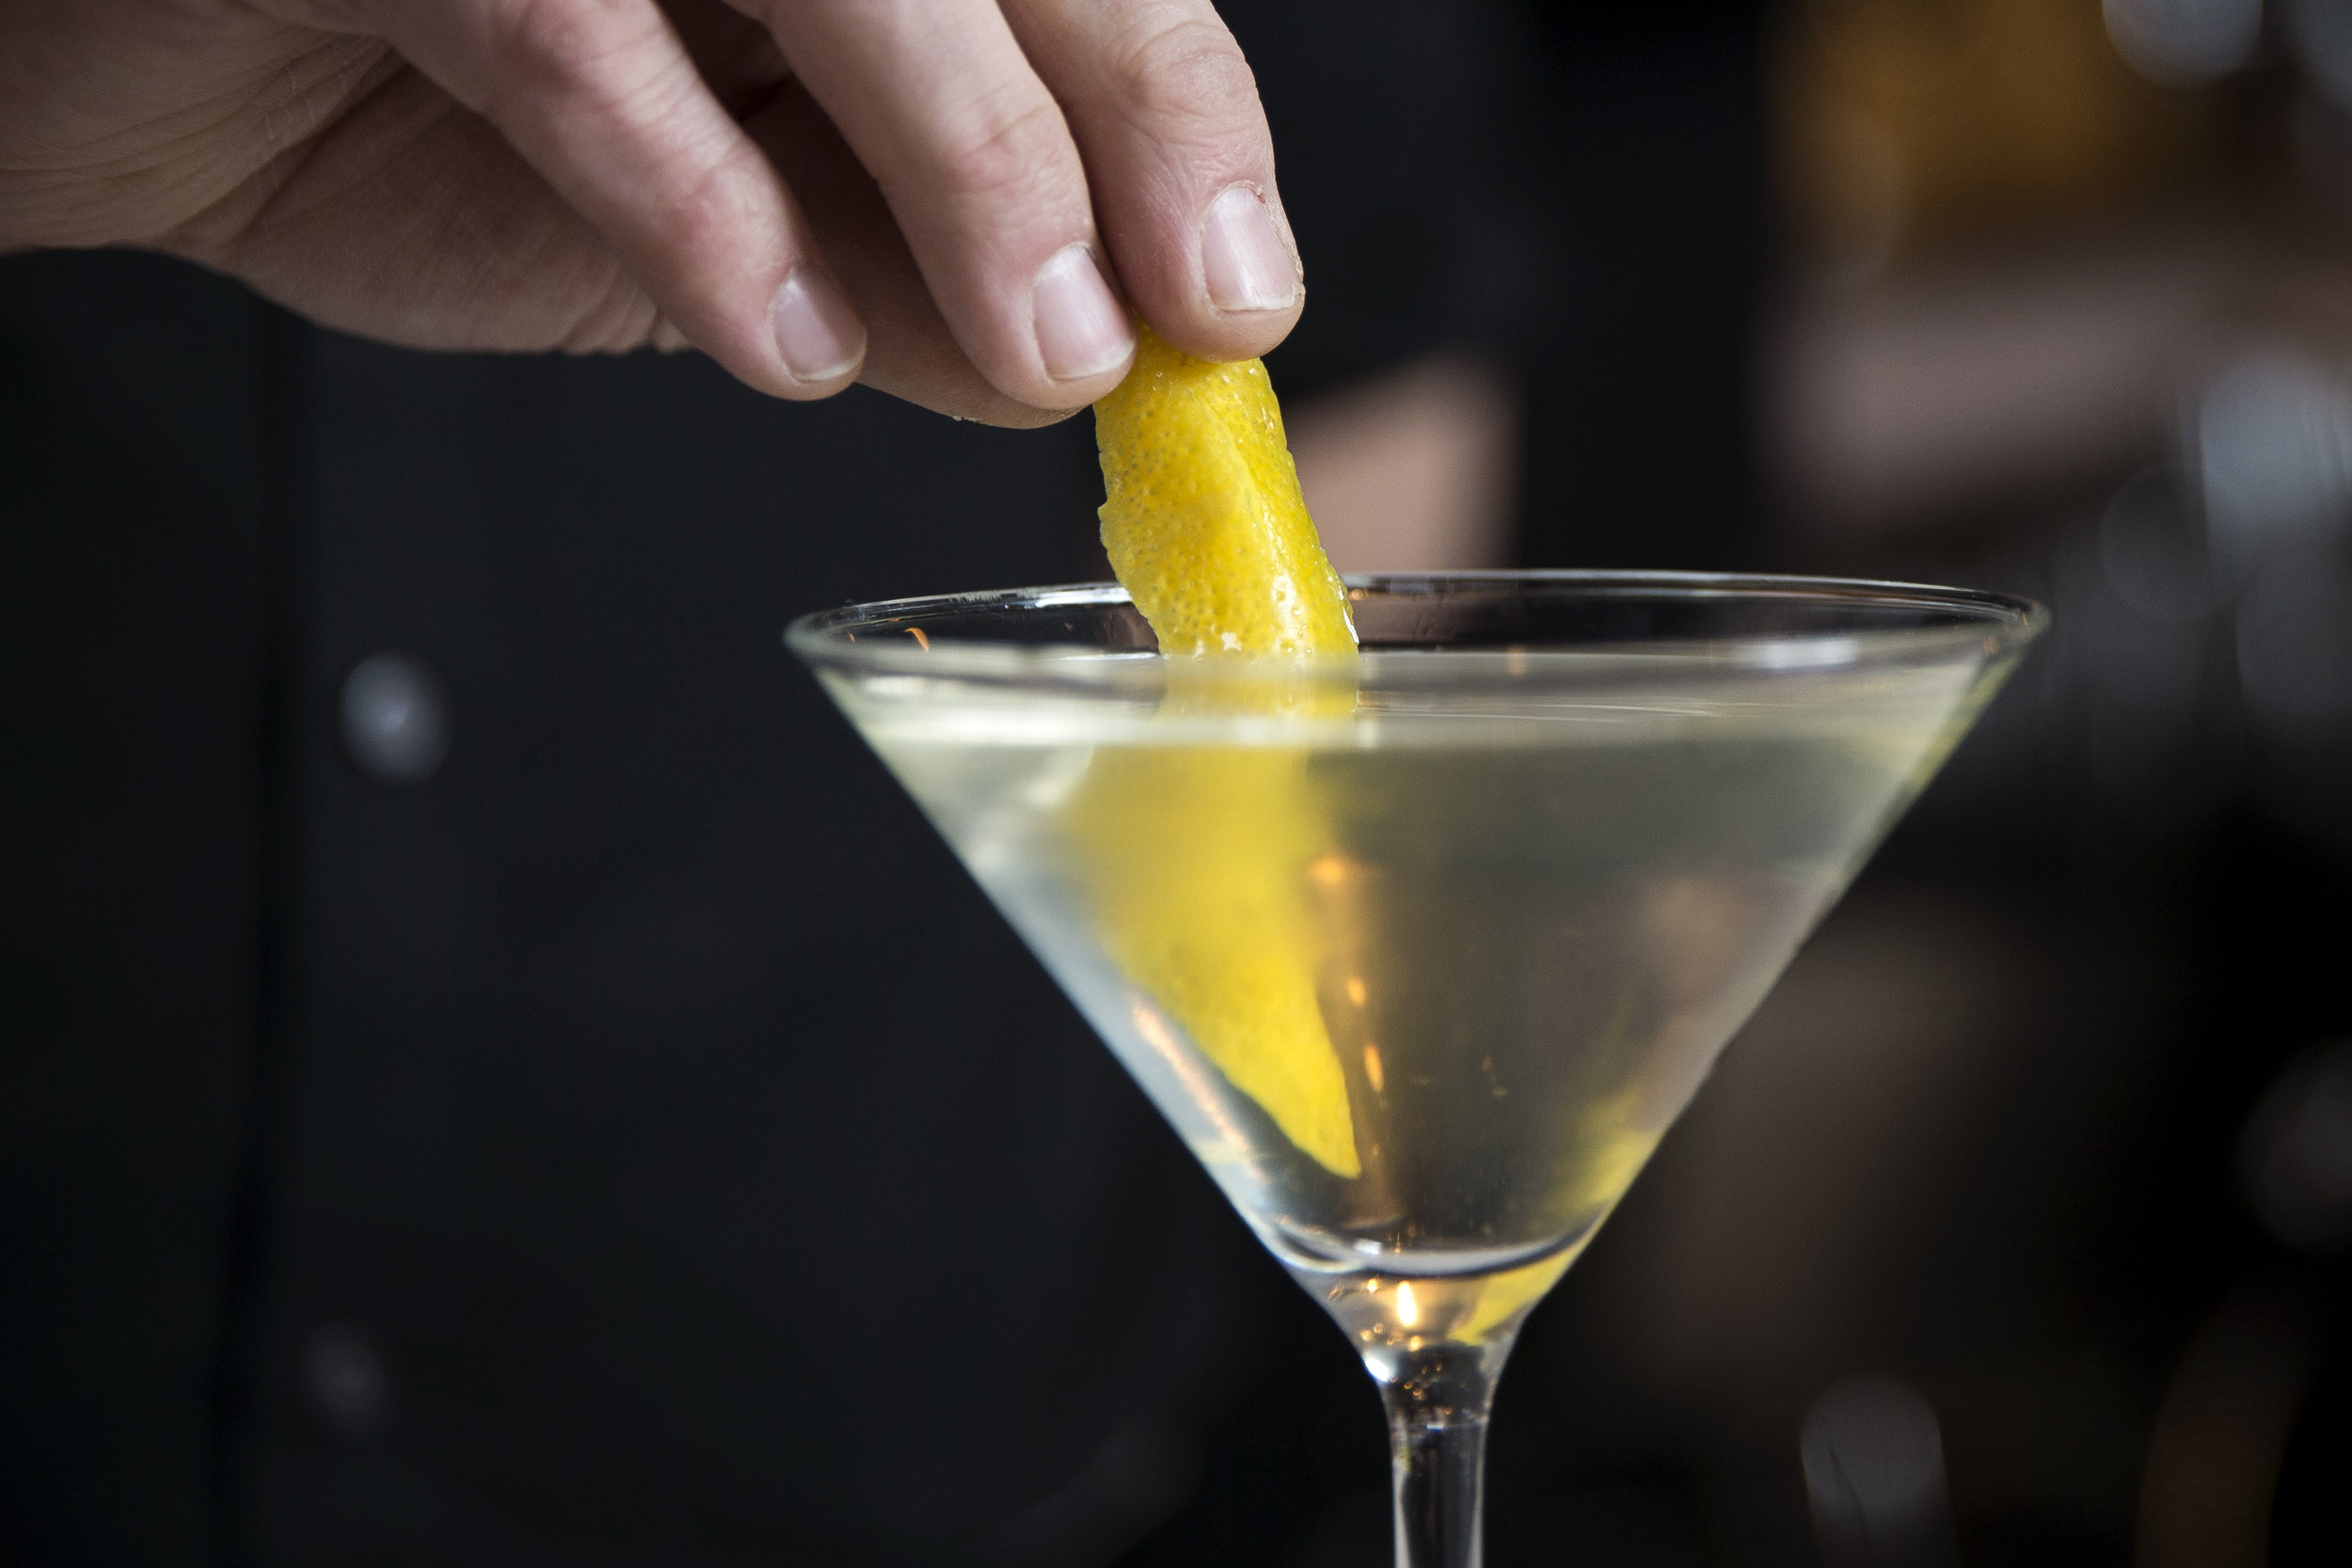 Oyster House Martini with lemon rind